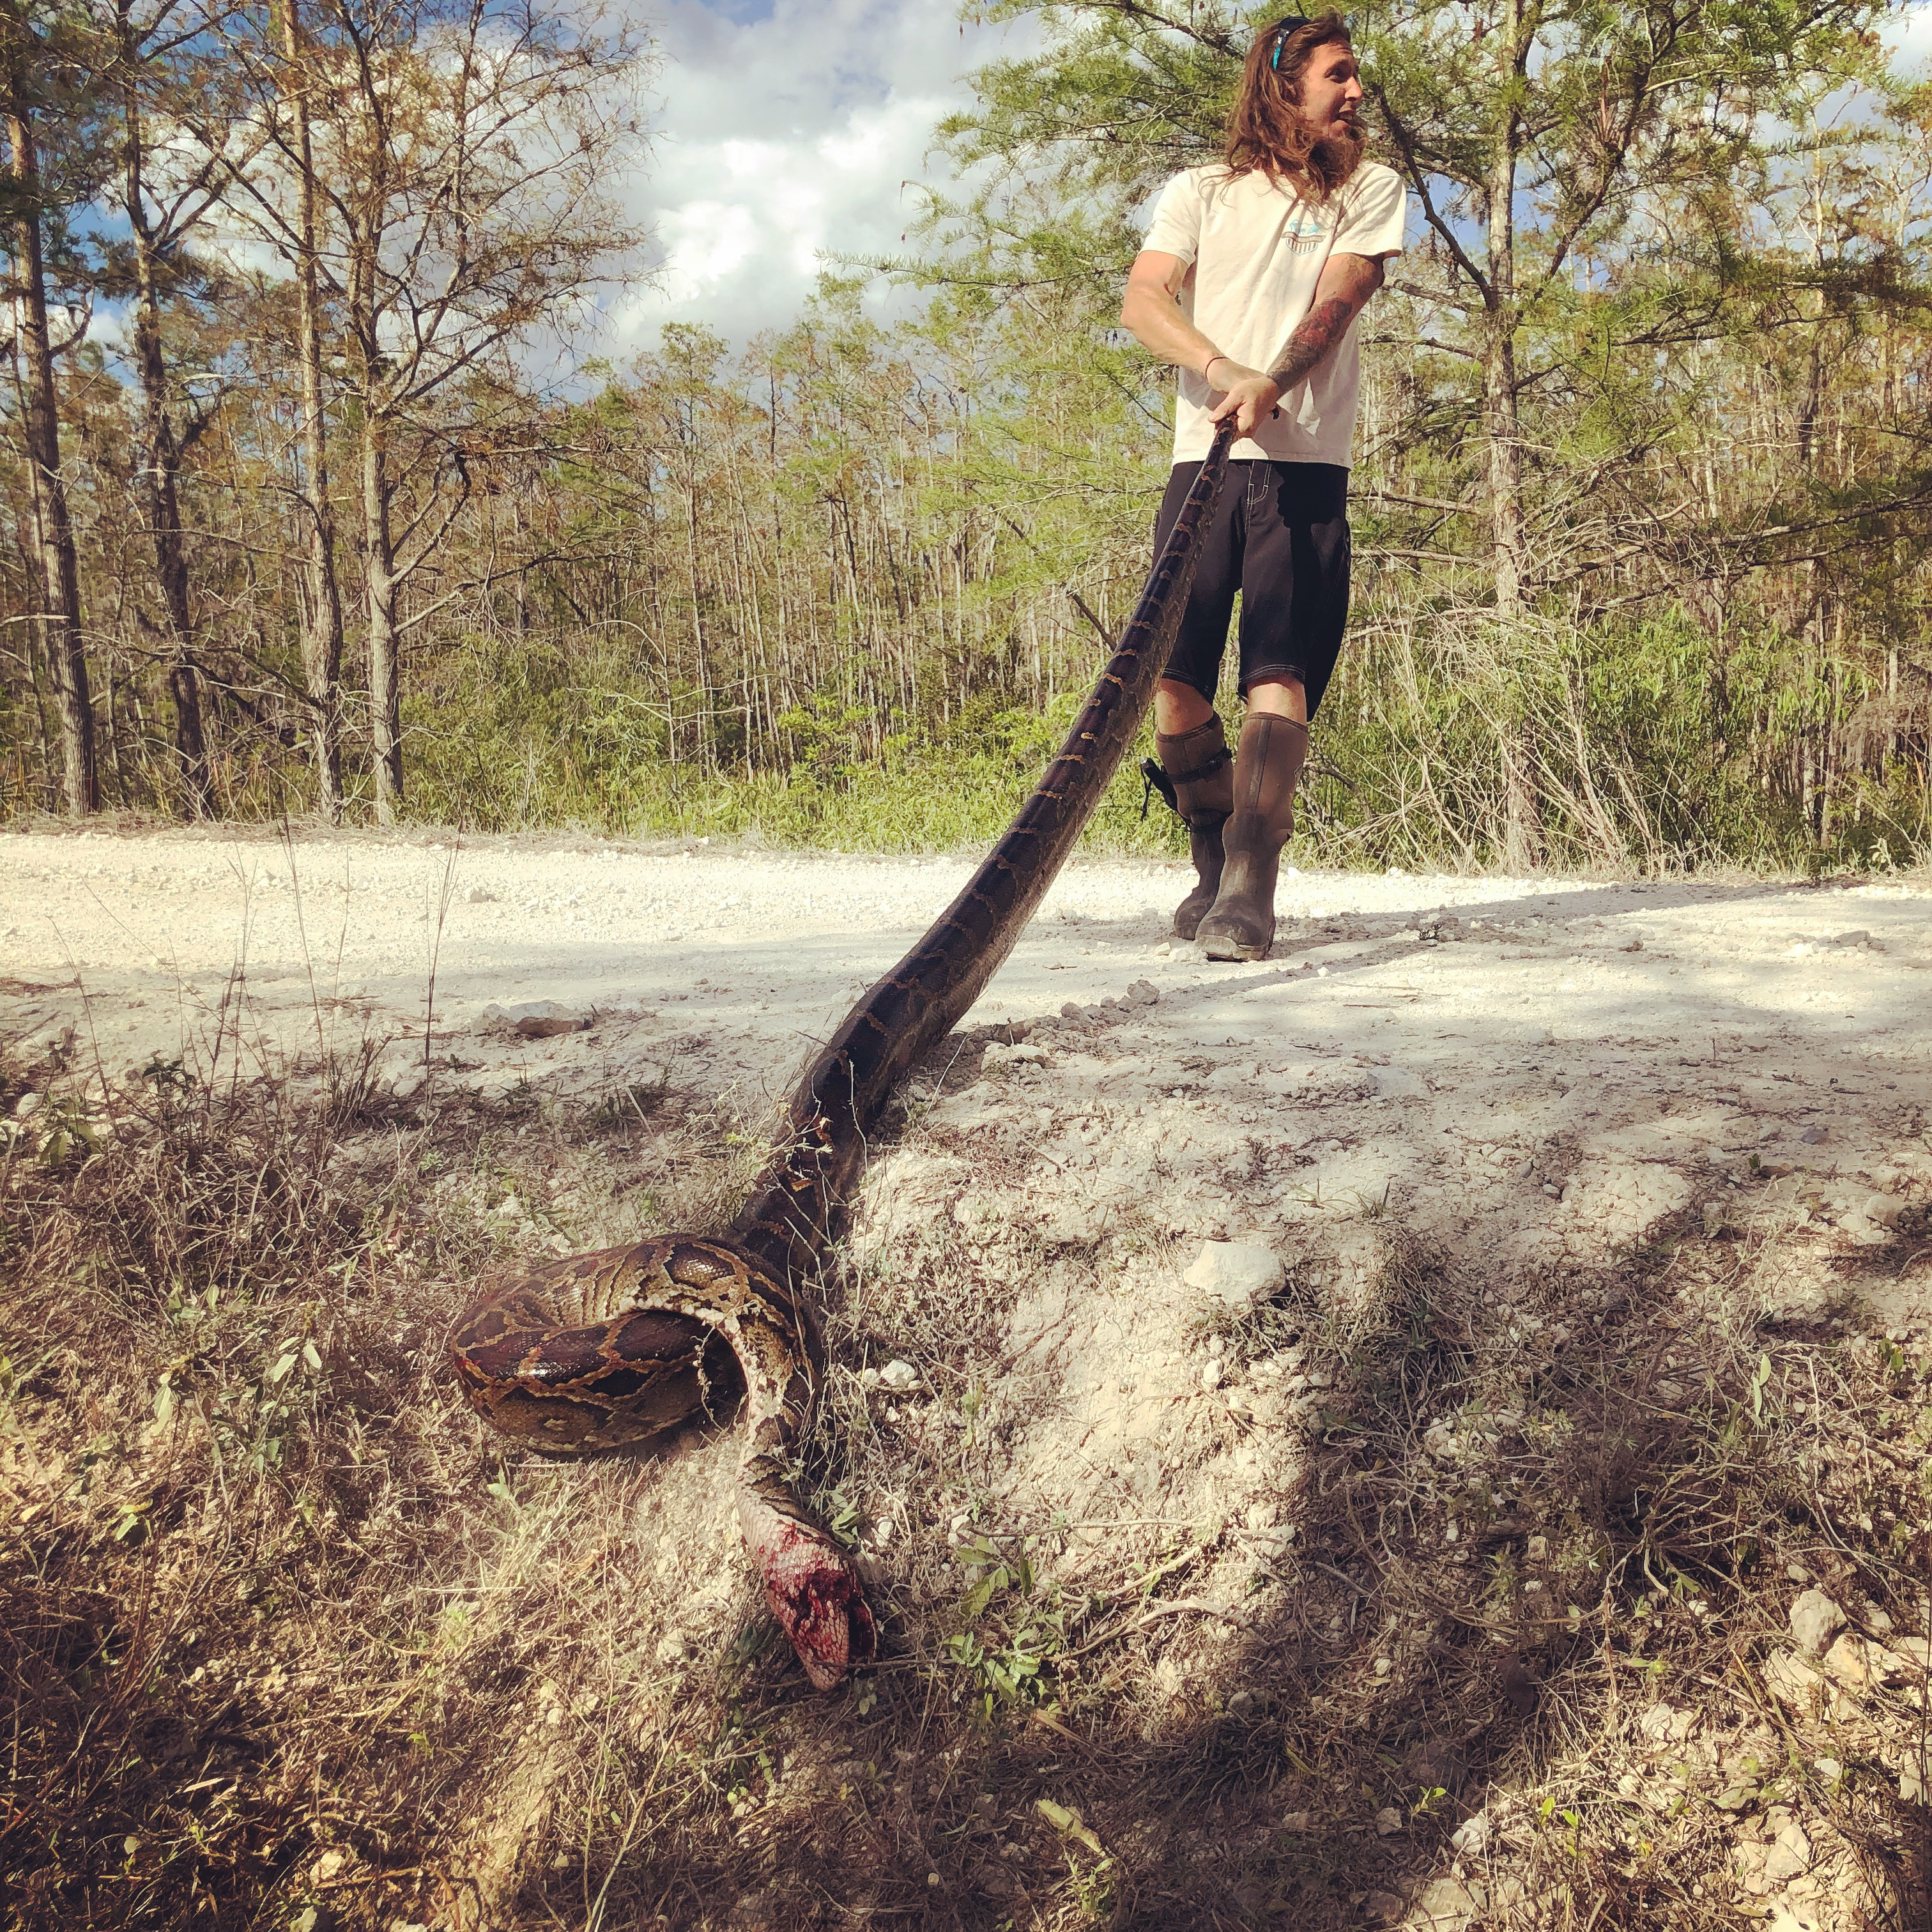 Photograph of snake removal